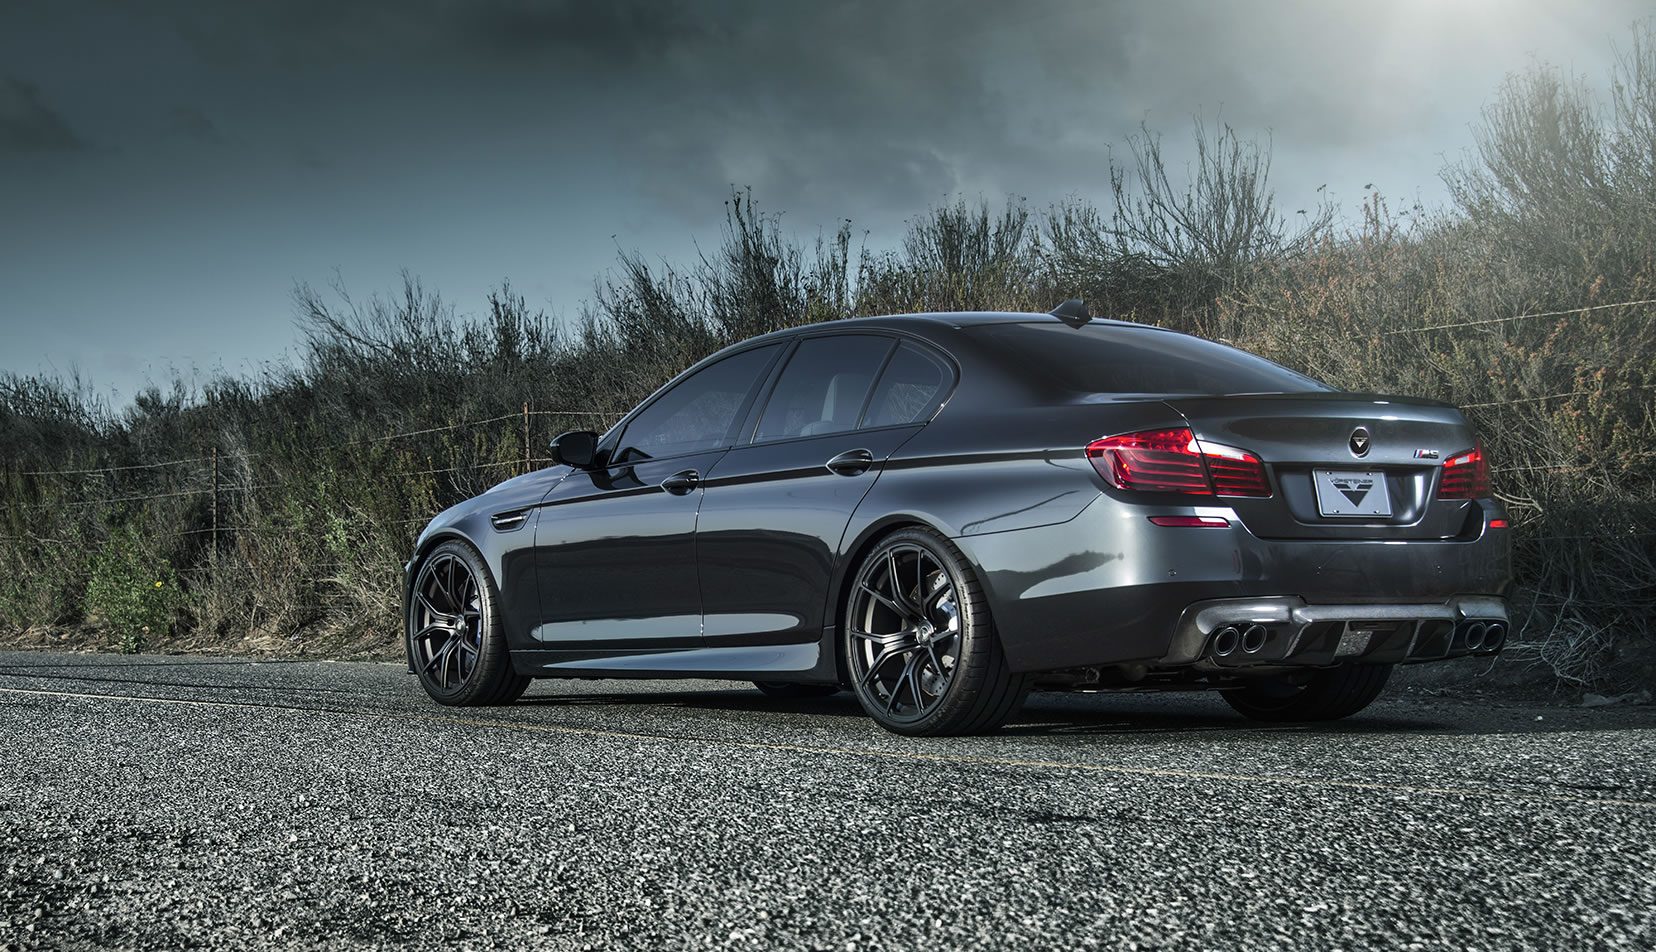 2014 BMW M5 by Vorsteiner Photos, Specs and Review - RS